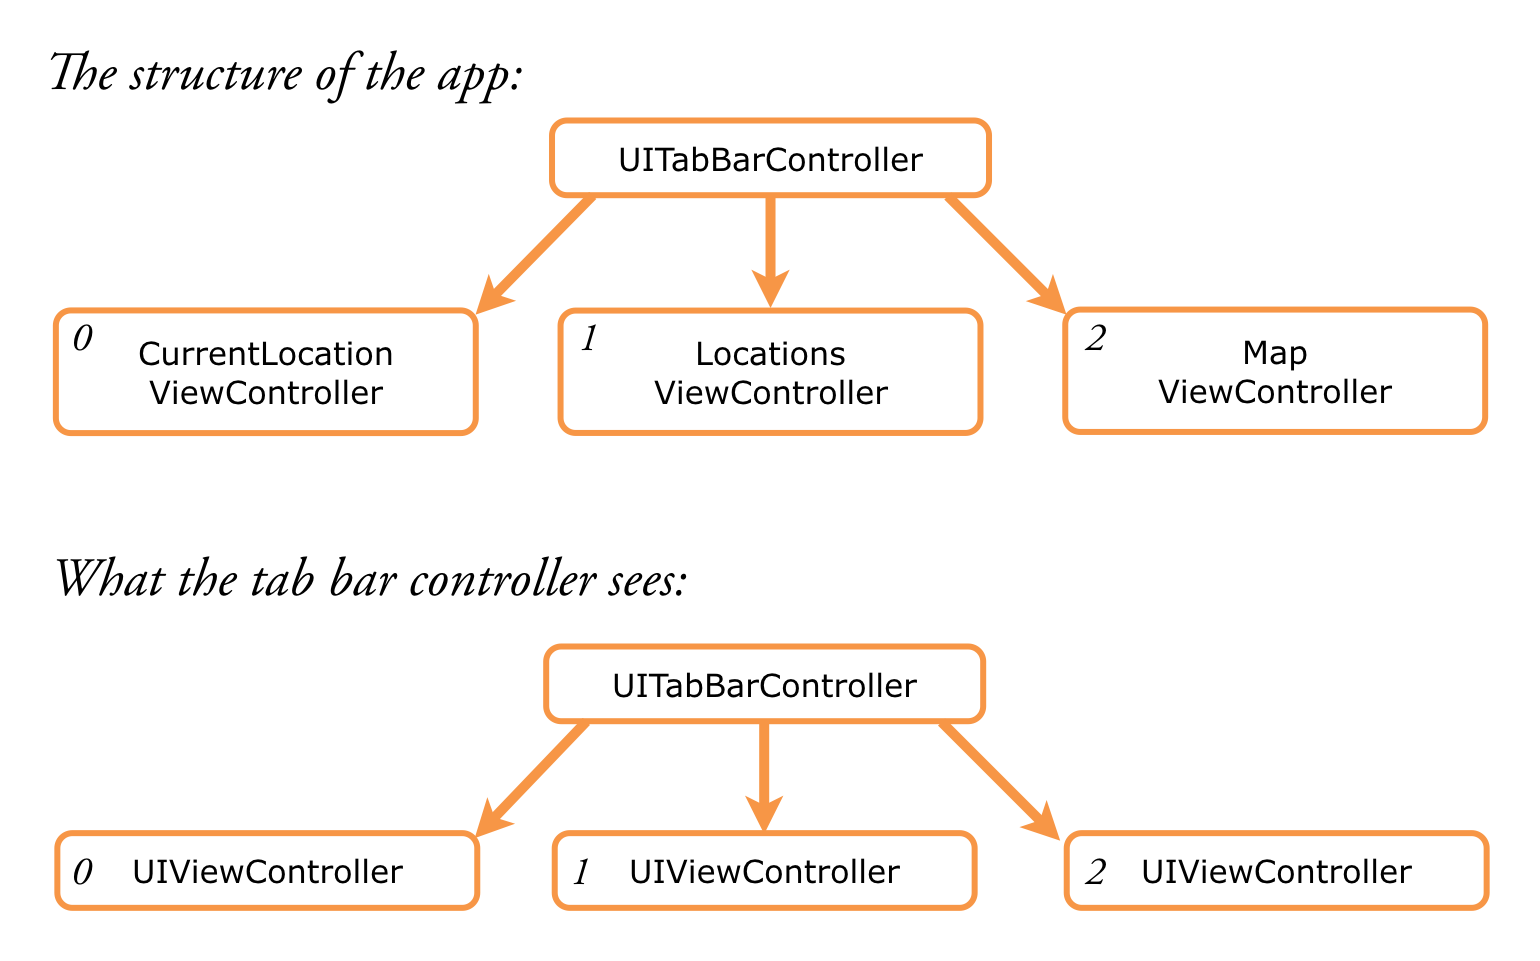 The UITabBarController does not see your subclasses